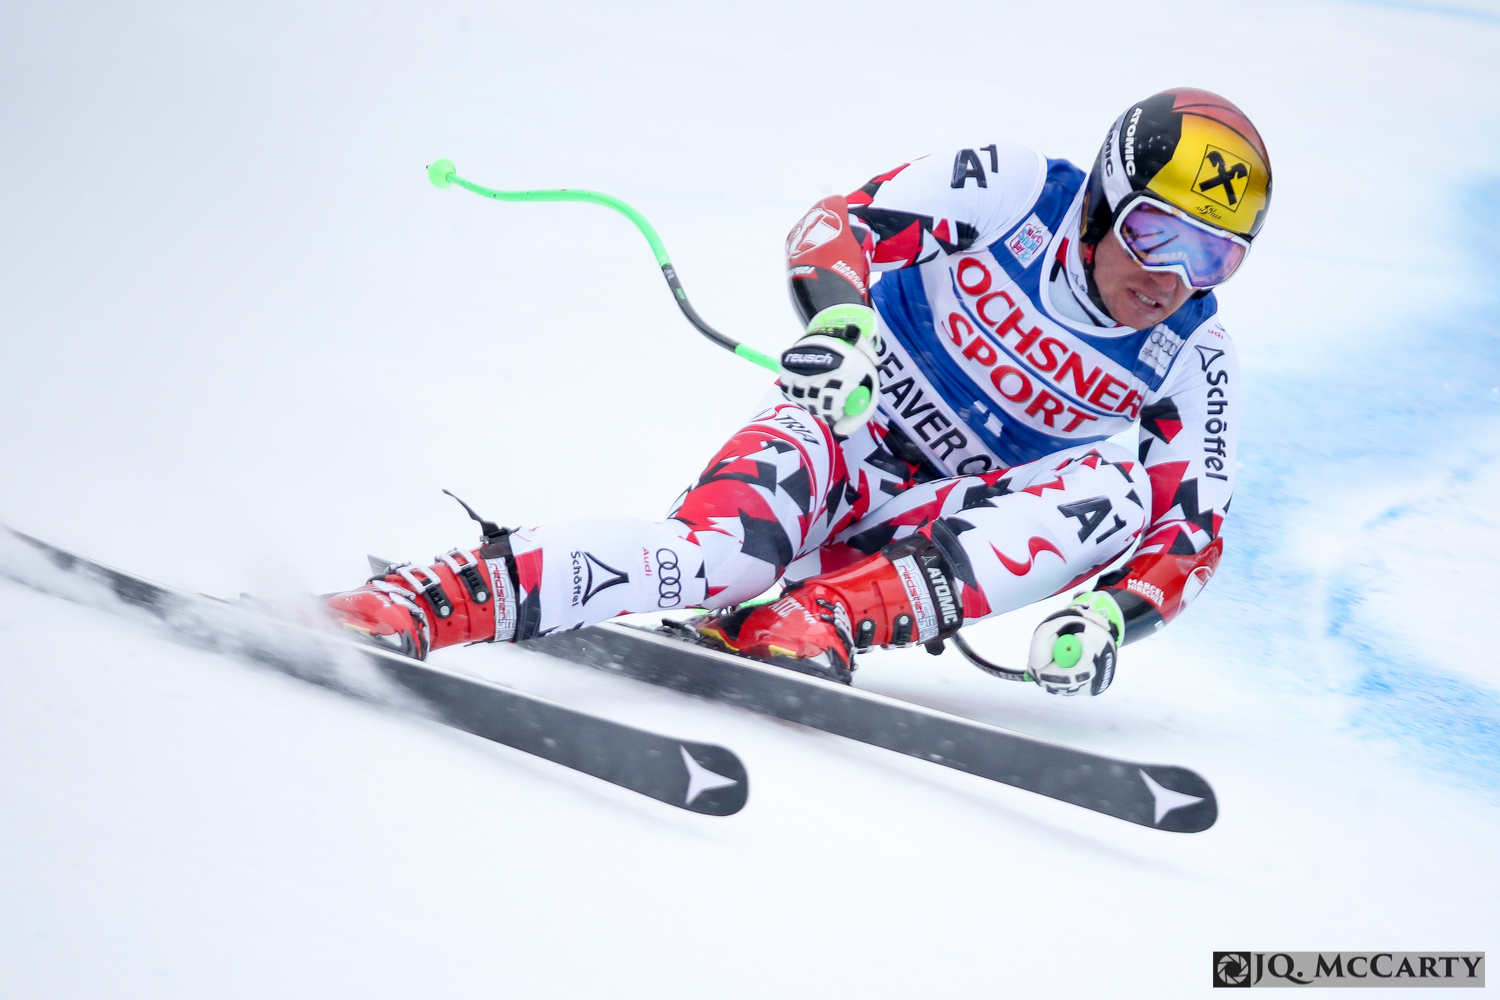 Austrian Marcel Hirscher charges around a turn while making fast work of the Birds of Prey World Cup super-G race course Saturday in Beaver Creek. Hirscher took home the gold medal with a time of 1 minute, 6.90 seconds.